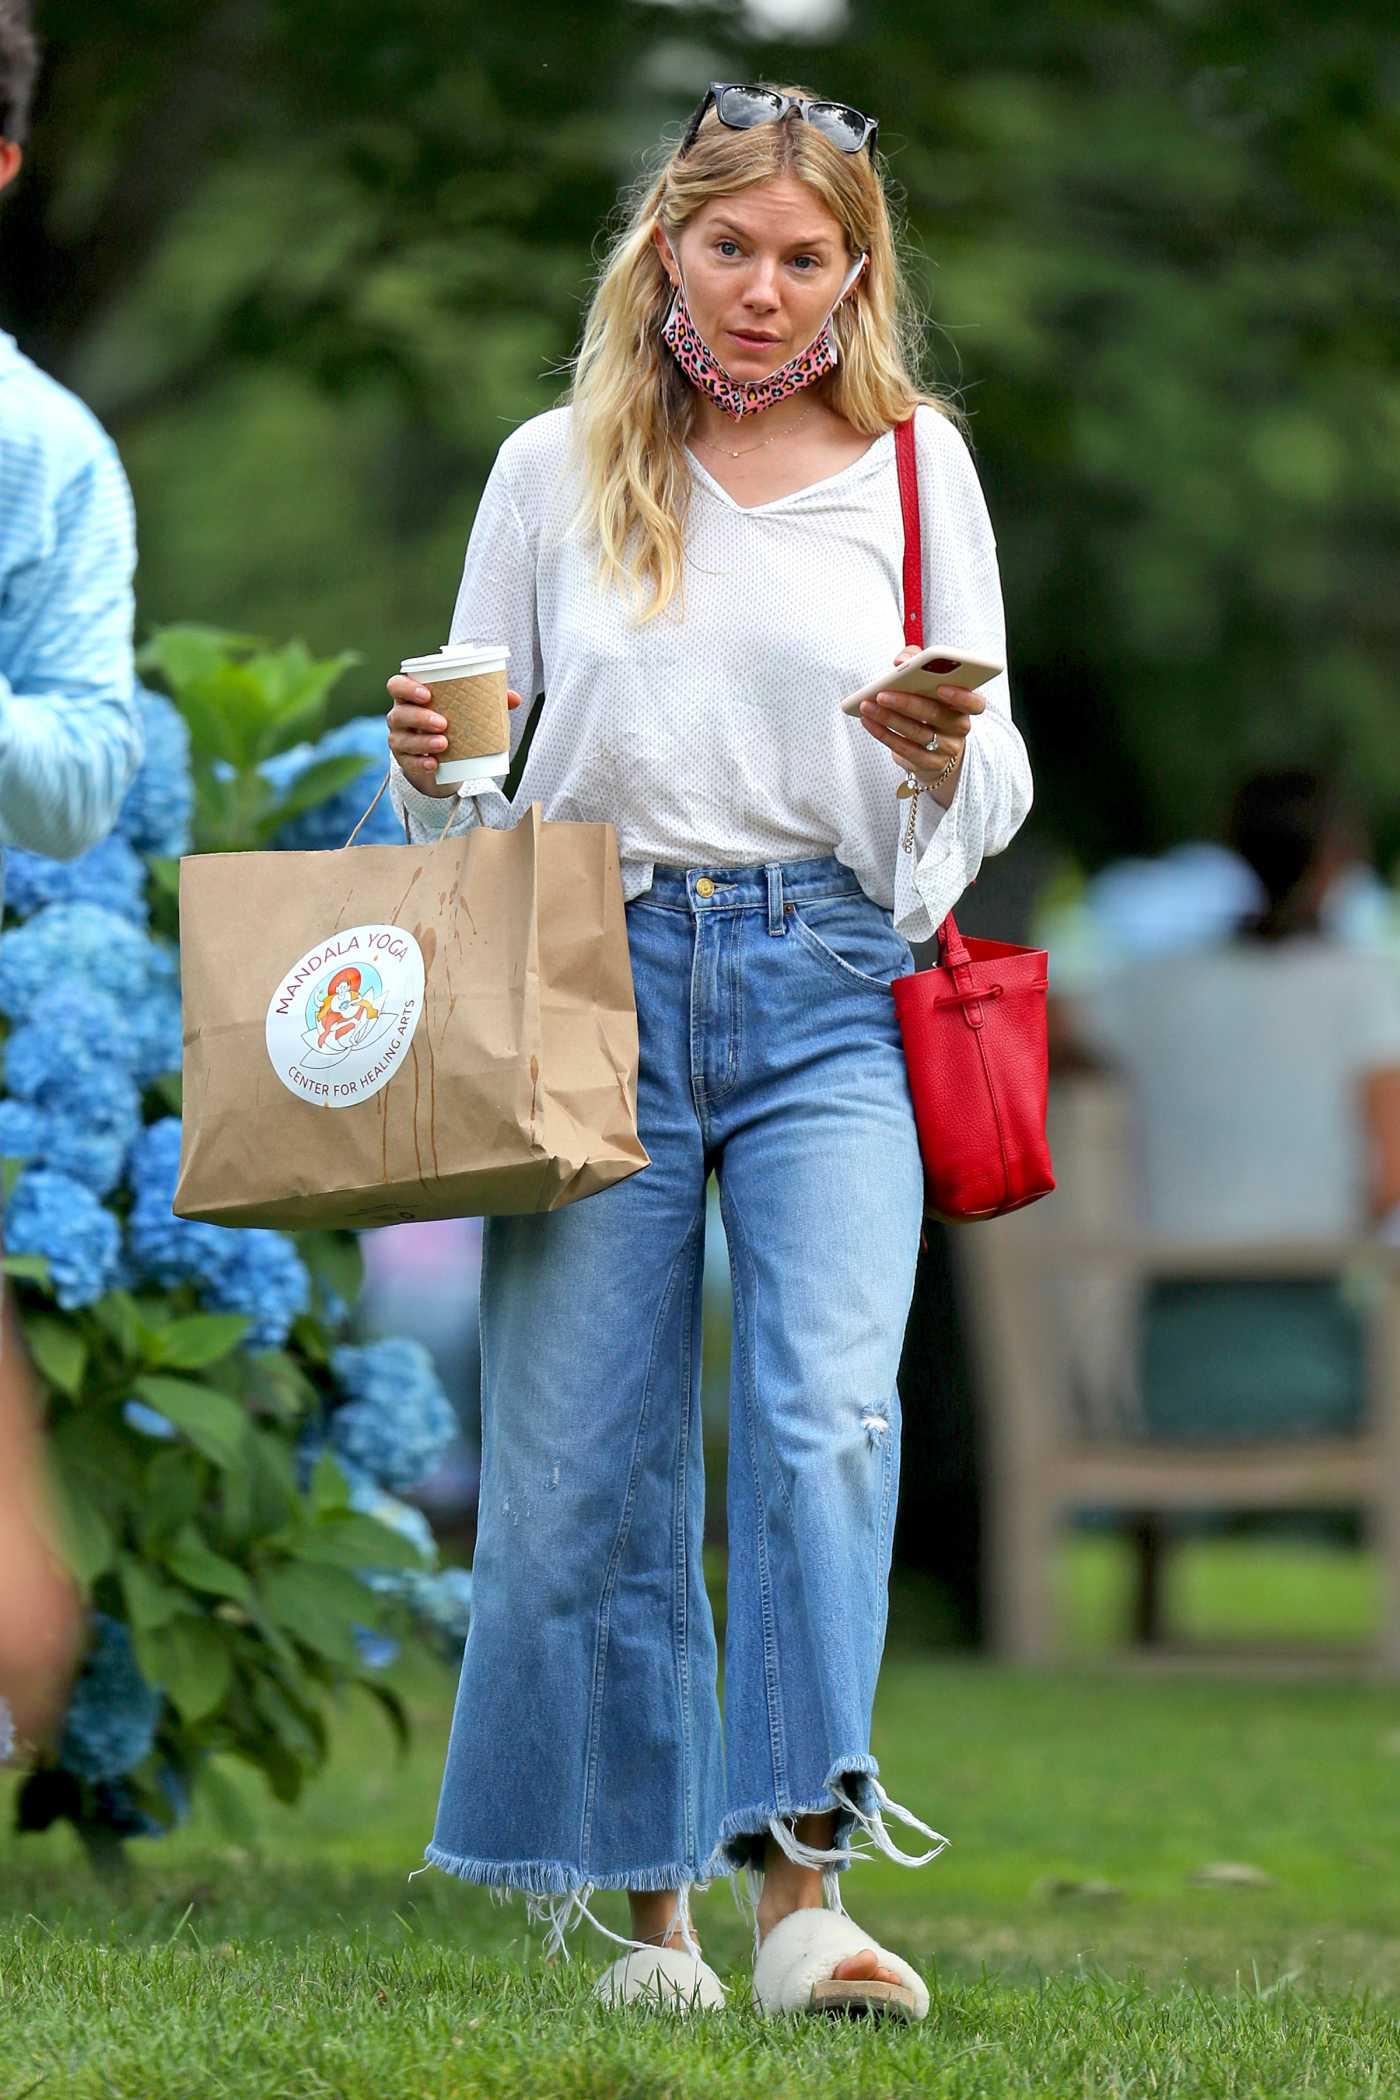 Sienna Miller in a White Blouse Was Seen Out in The Hamptons, New York 07/15/2020